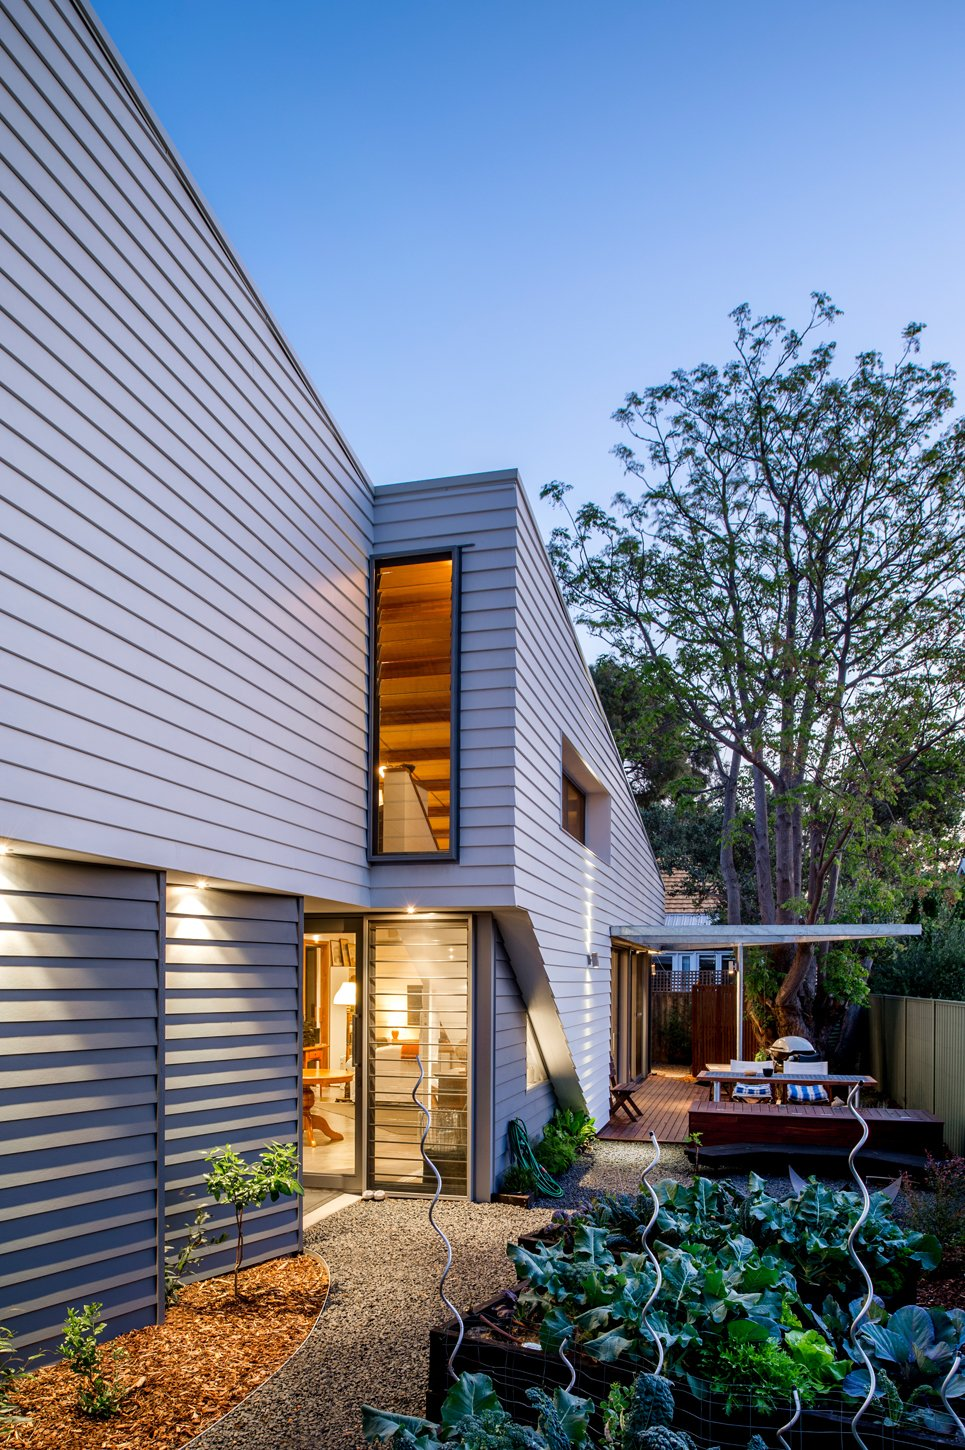 Outdoor, Back Yard, Small Patio, Porch, Deck, Wood Patio, Porch, Deck, and Walkways Native plantings limit the need to use water for irrigation, while a vegetable garden offers a sustainable source of produce.  Photo 4 of 6 in Thin, Mint: A Eco-Friendly House Rises in Compact Quarters